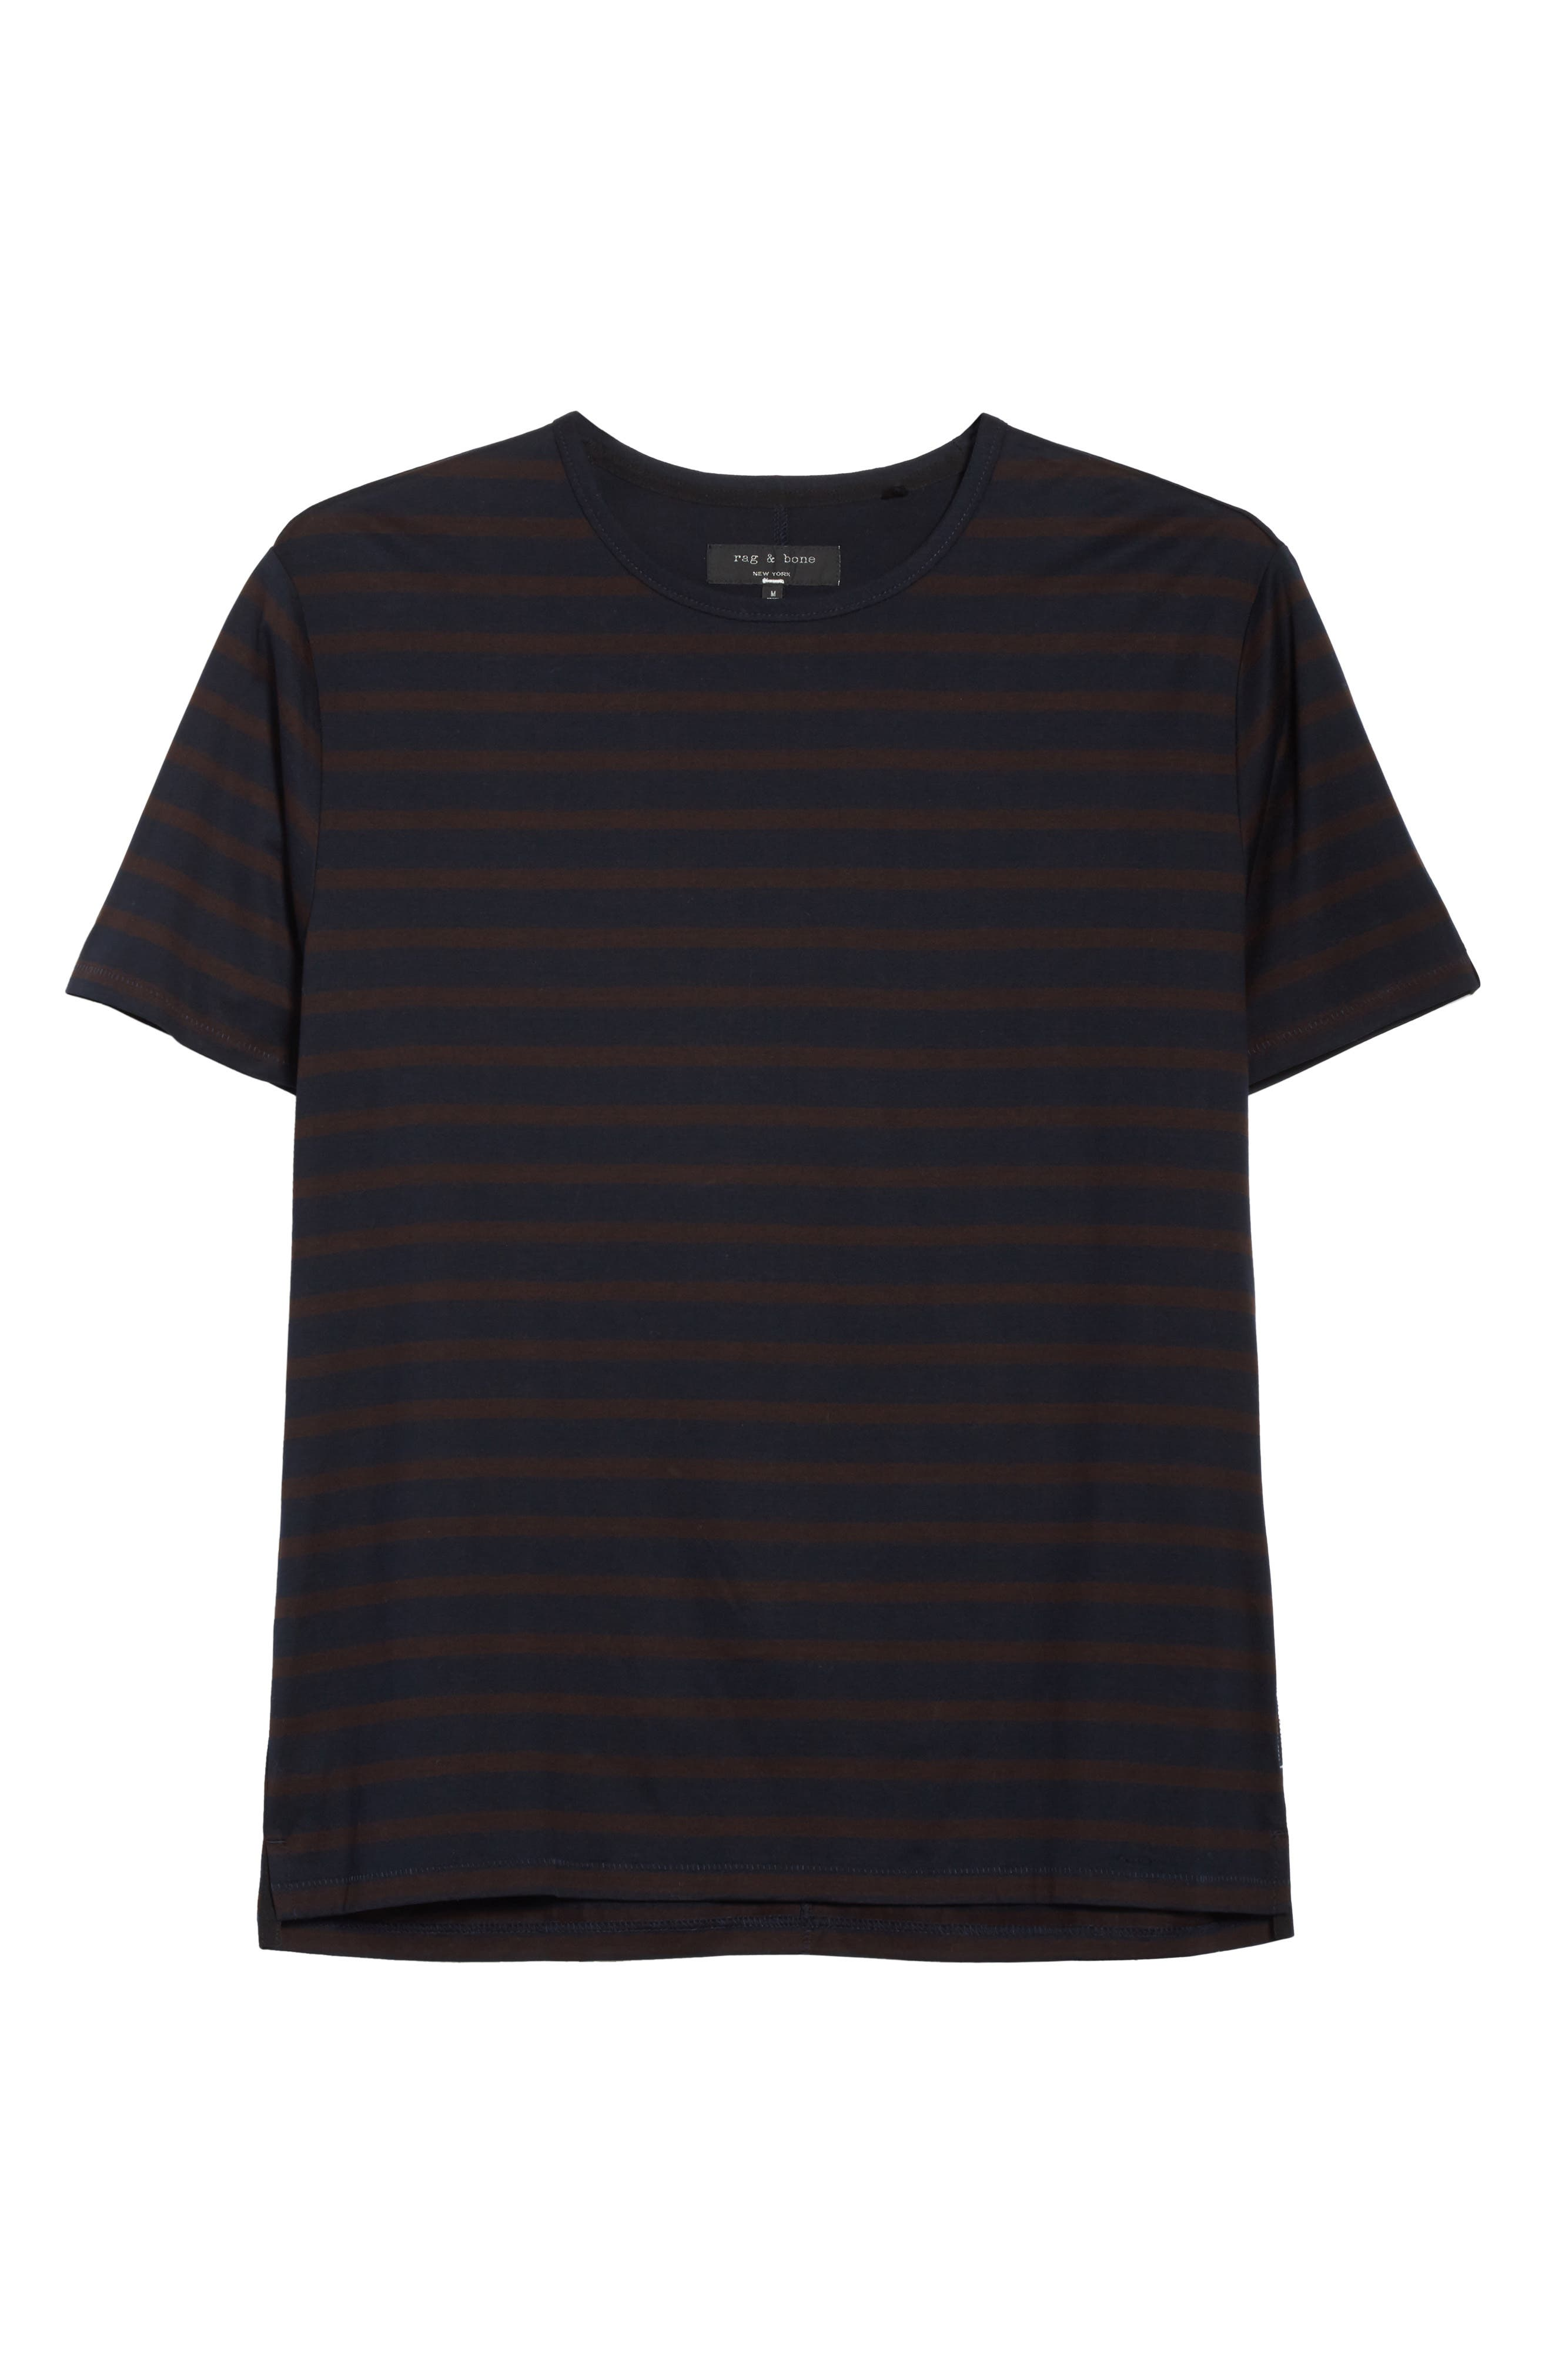 Henry Stripe T-Shirt,                             Alternate thumbnail 6, color,                             Navy/ Chocolate